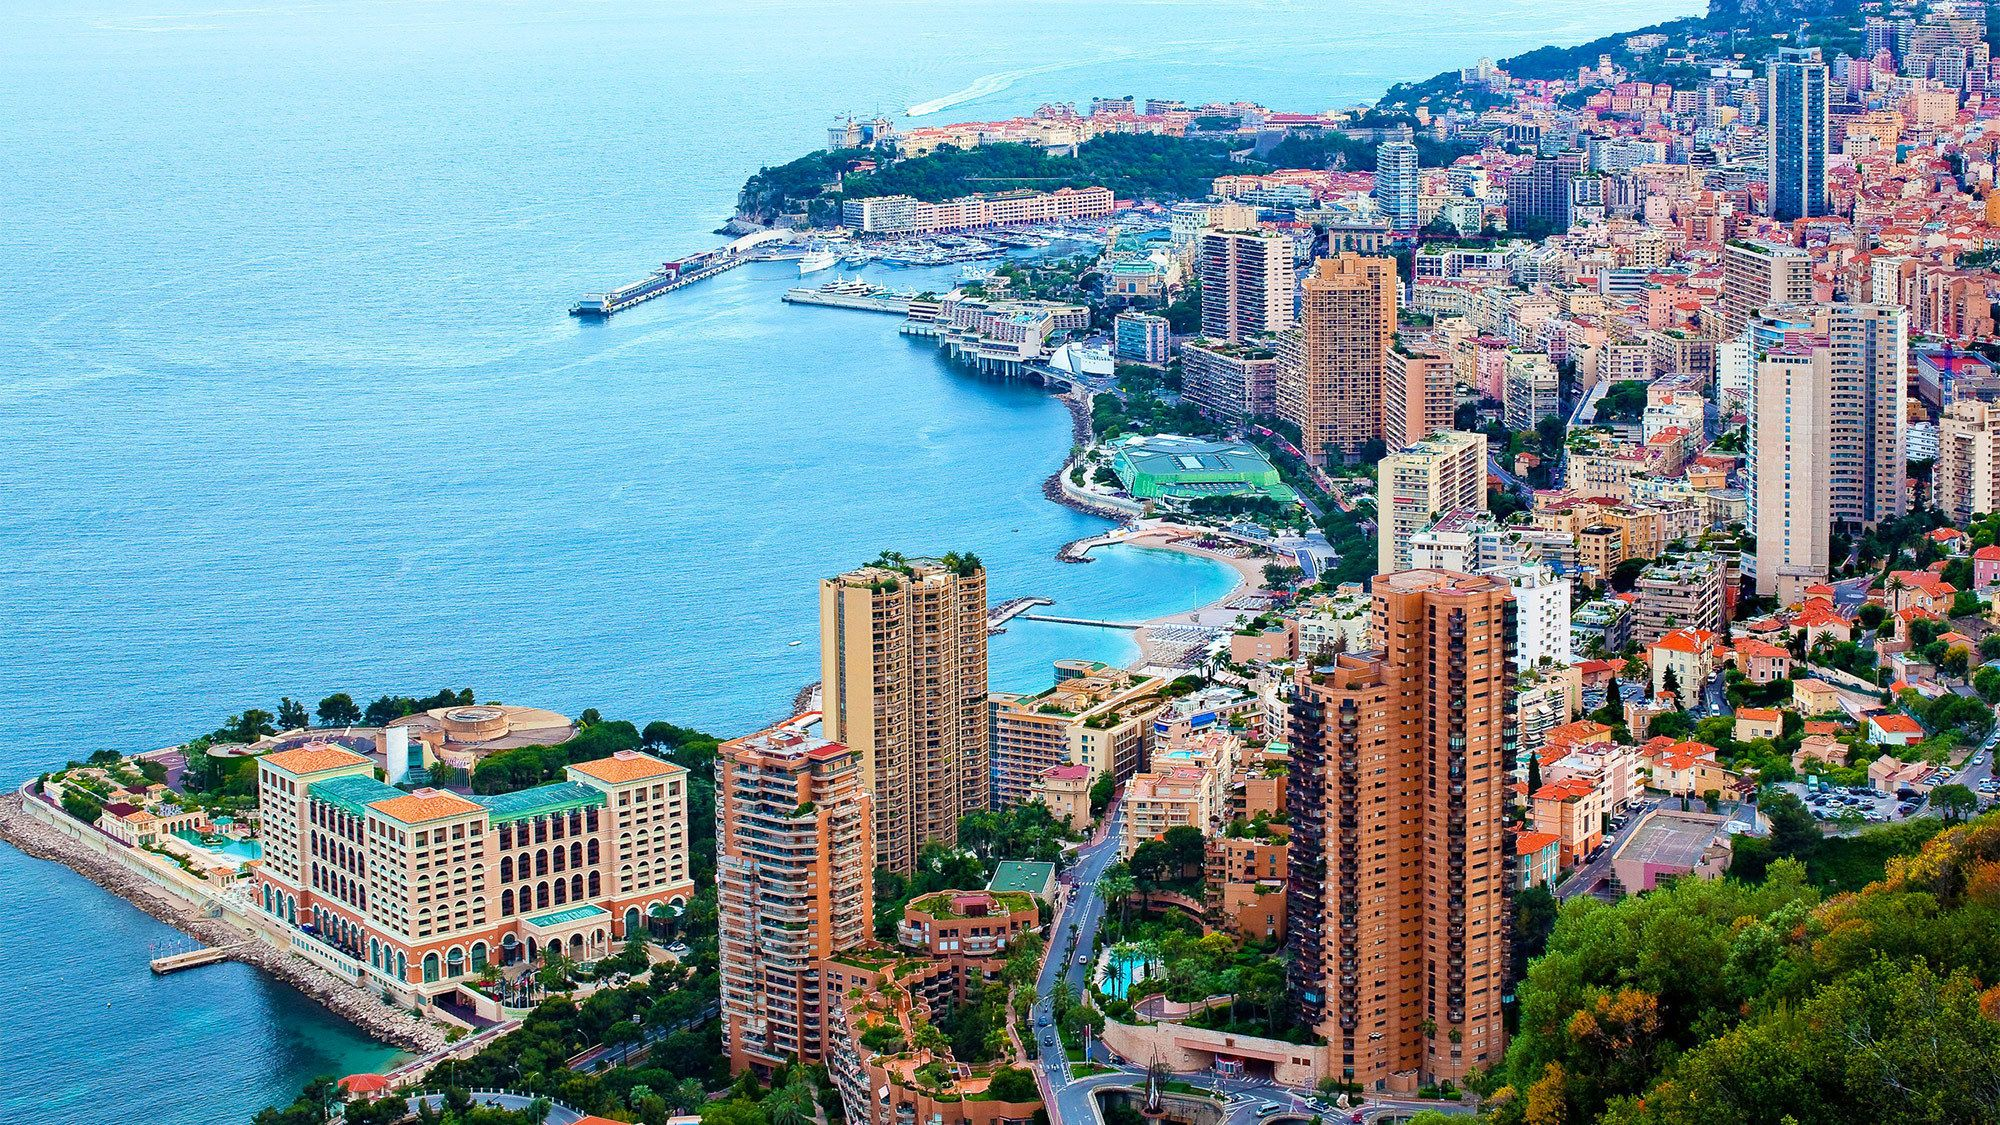 Aerial view of the French Riviera